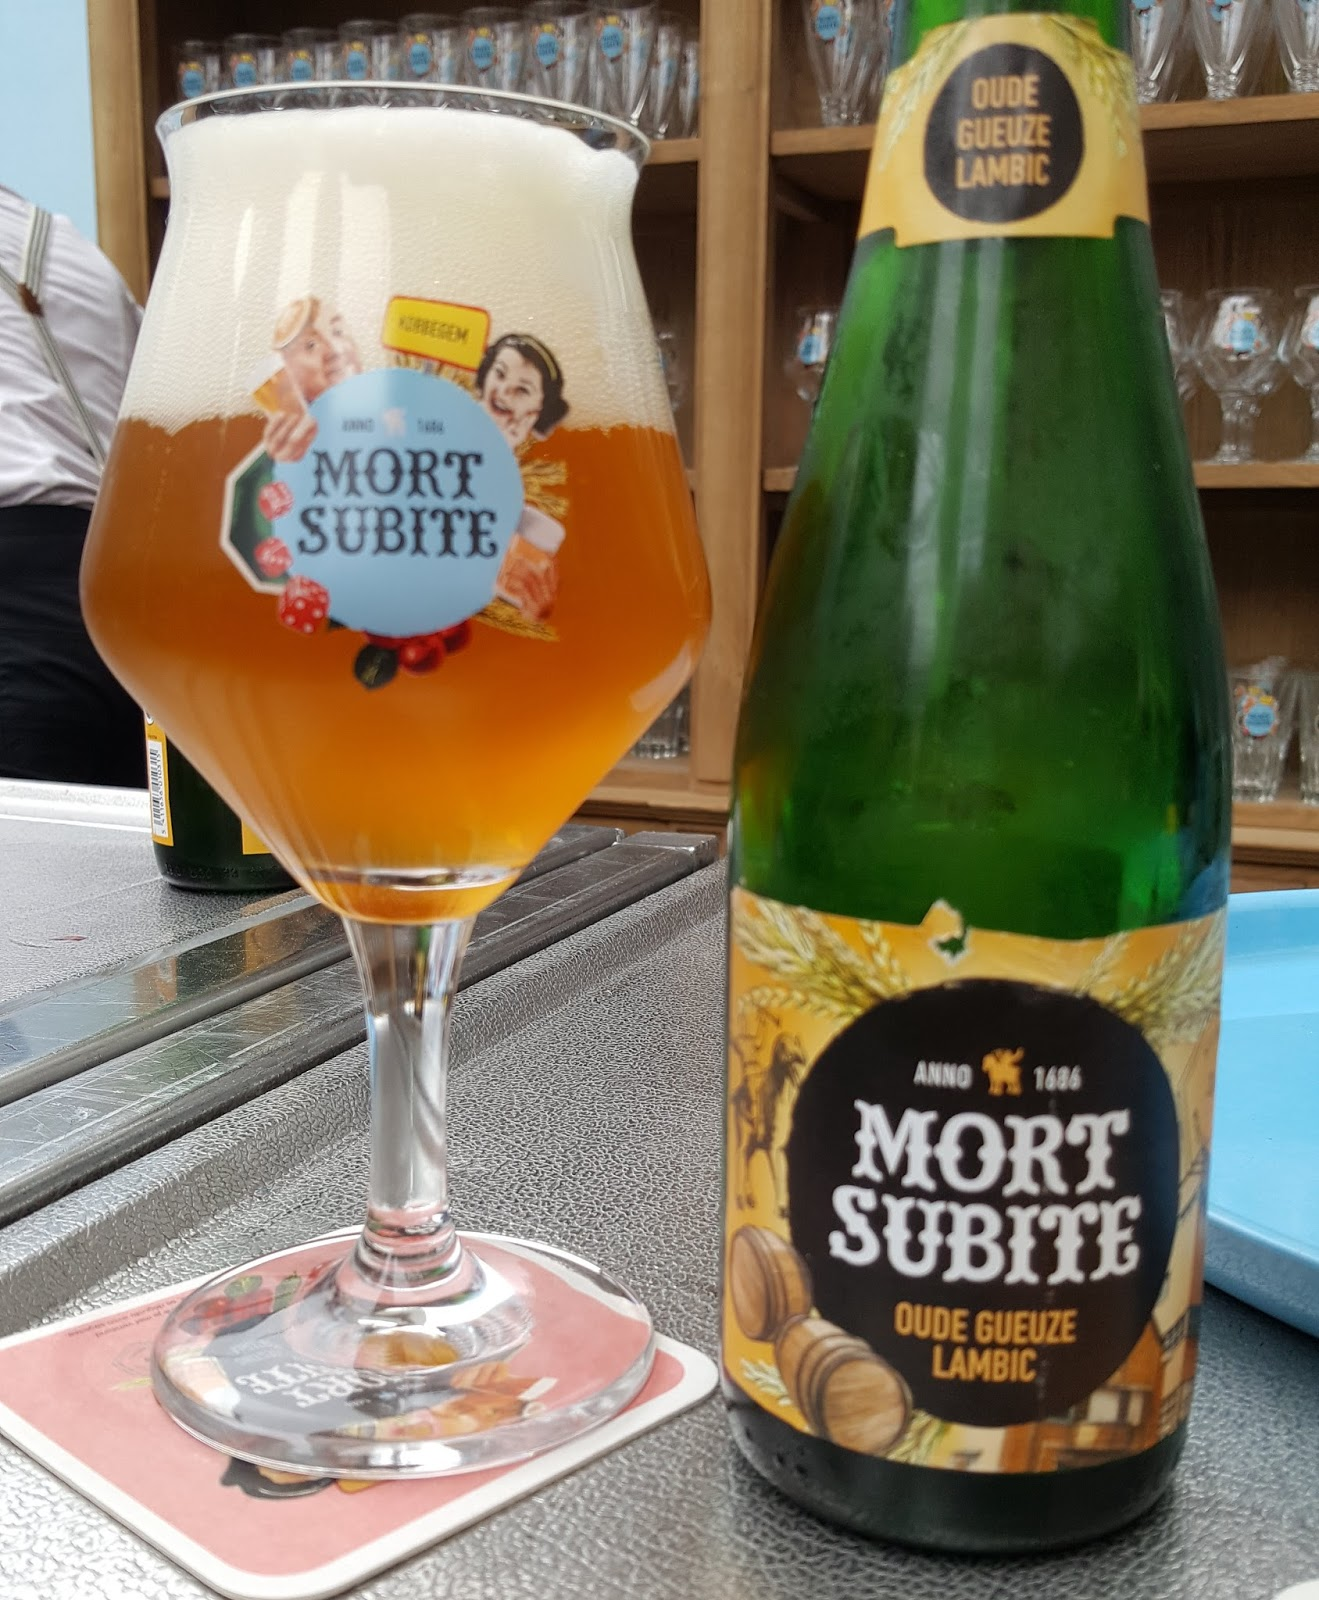 Ive Noticed In Recent Years How The Less Reputable Lambic Breweries Have Begun Putting Out Quality Oude Geuzes To Capture A Market Like Me That Isnt